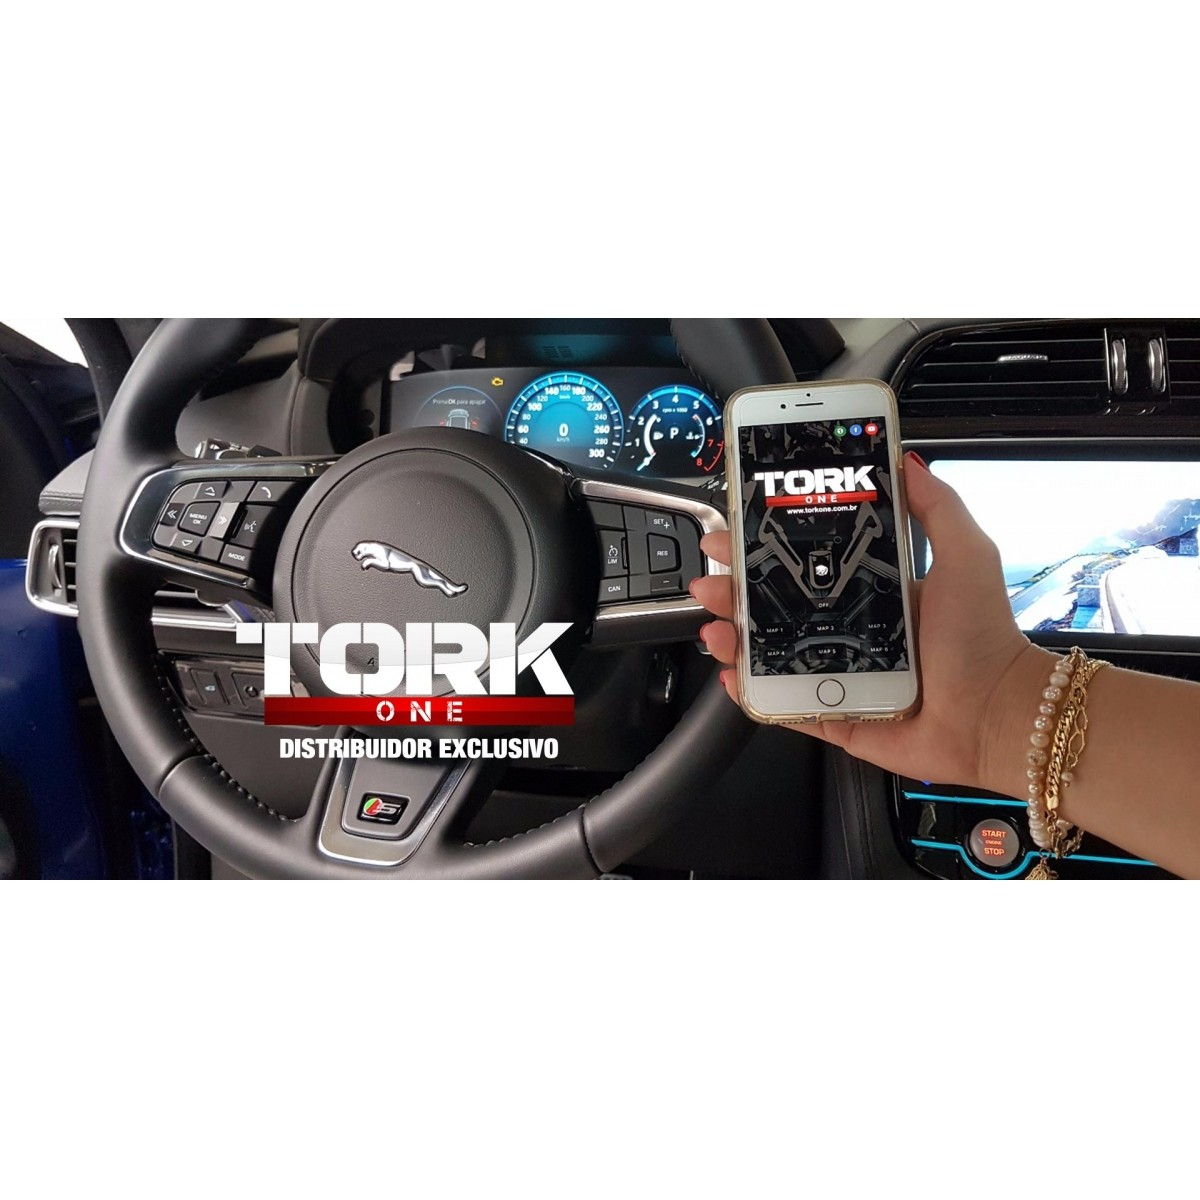 Gás Pedal - Kia - Tork One c/s Bluetooth